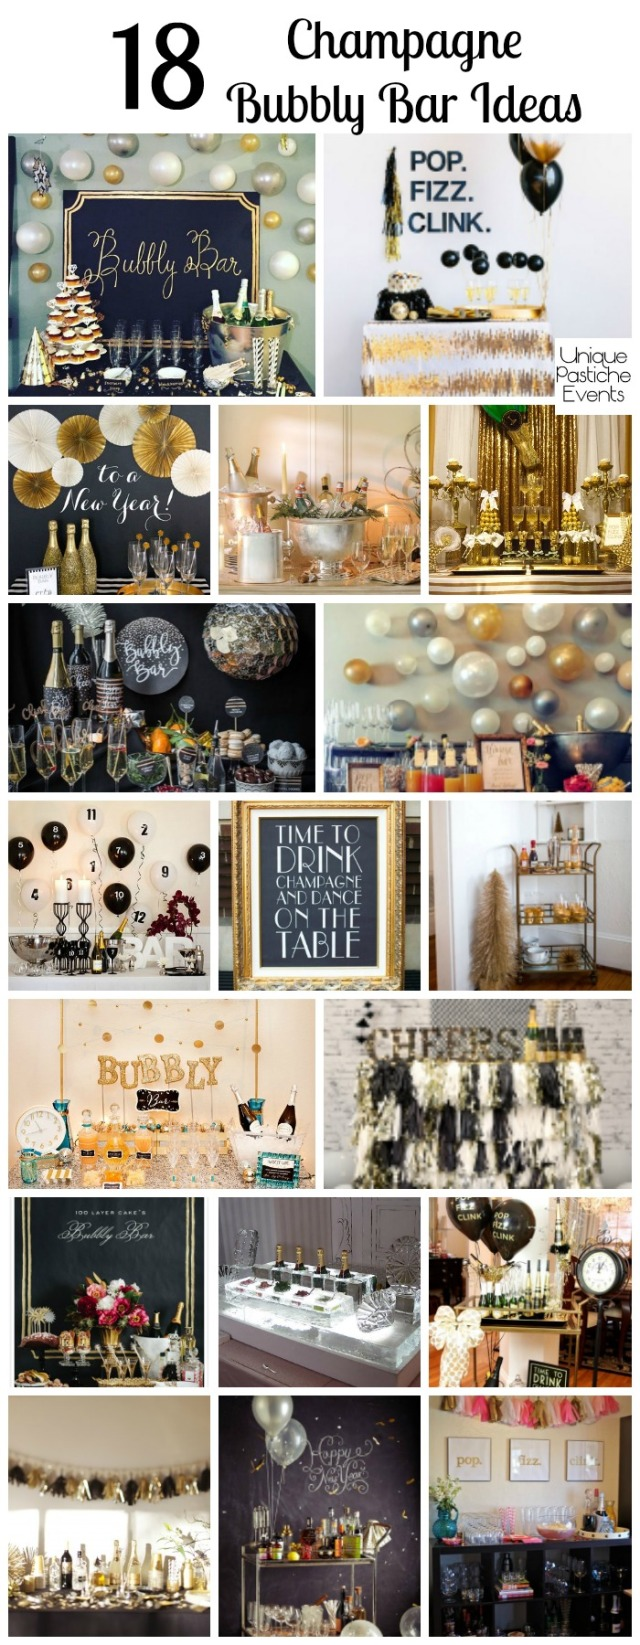 18 Champagne Bubbly Bar Ideas